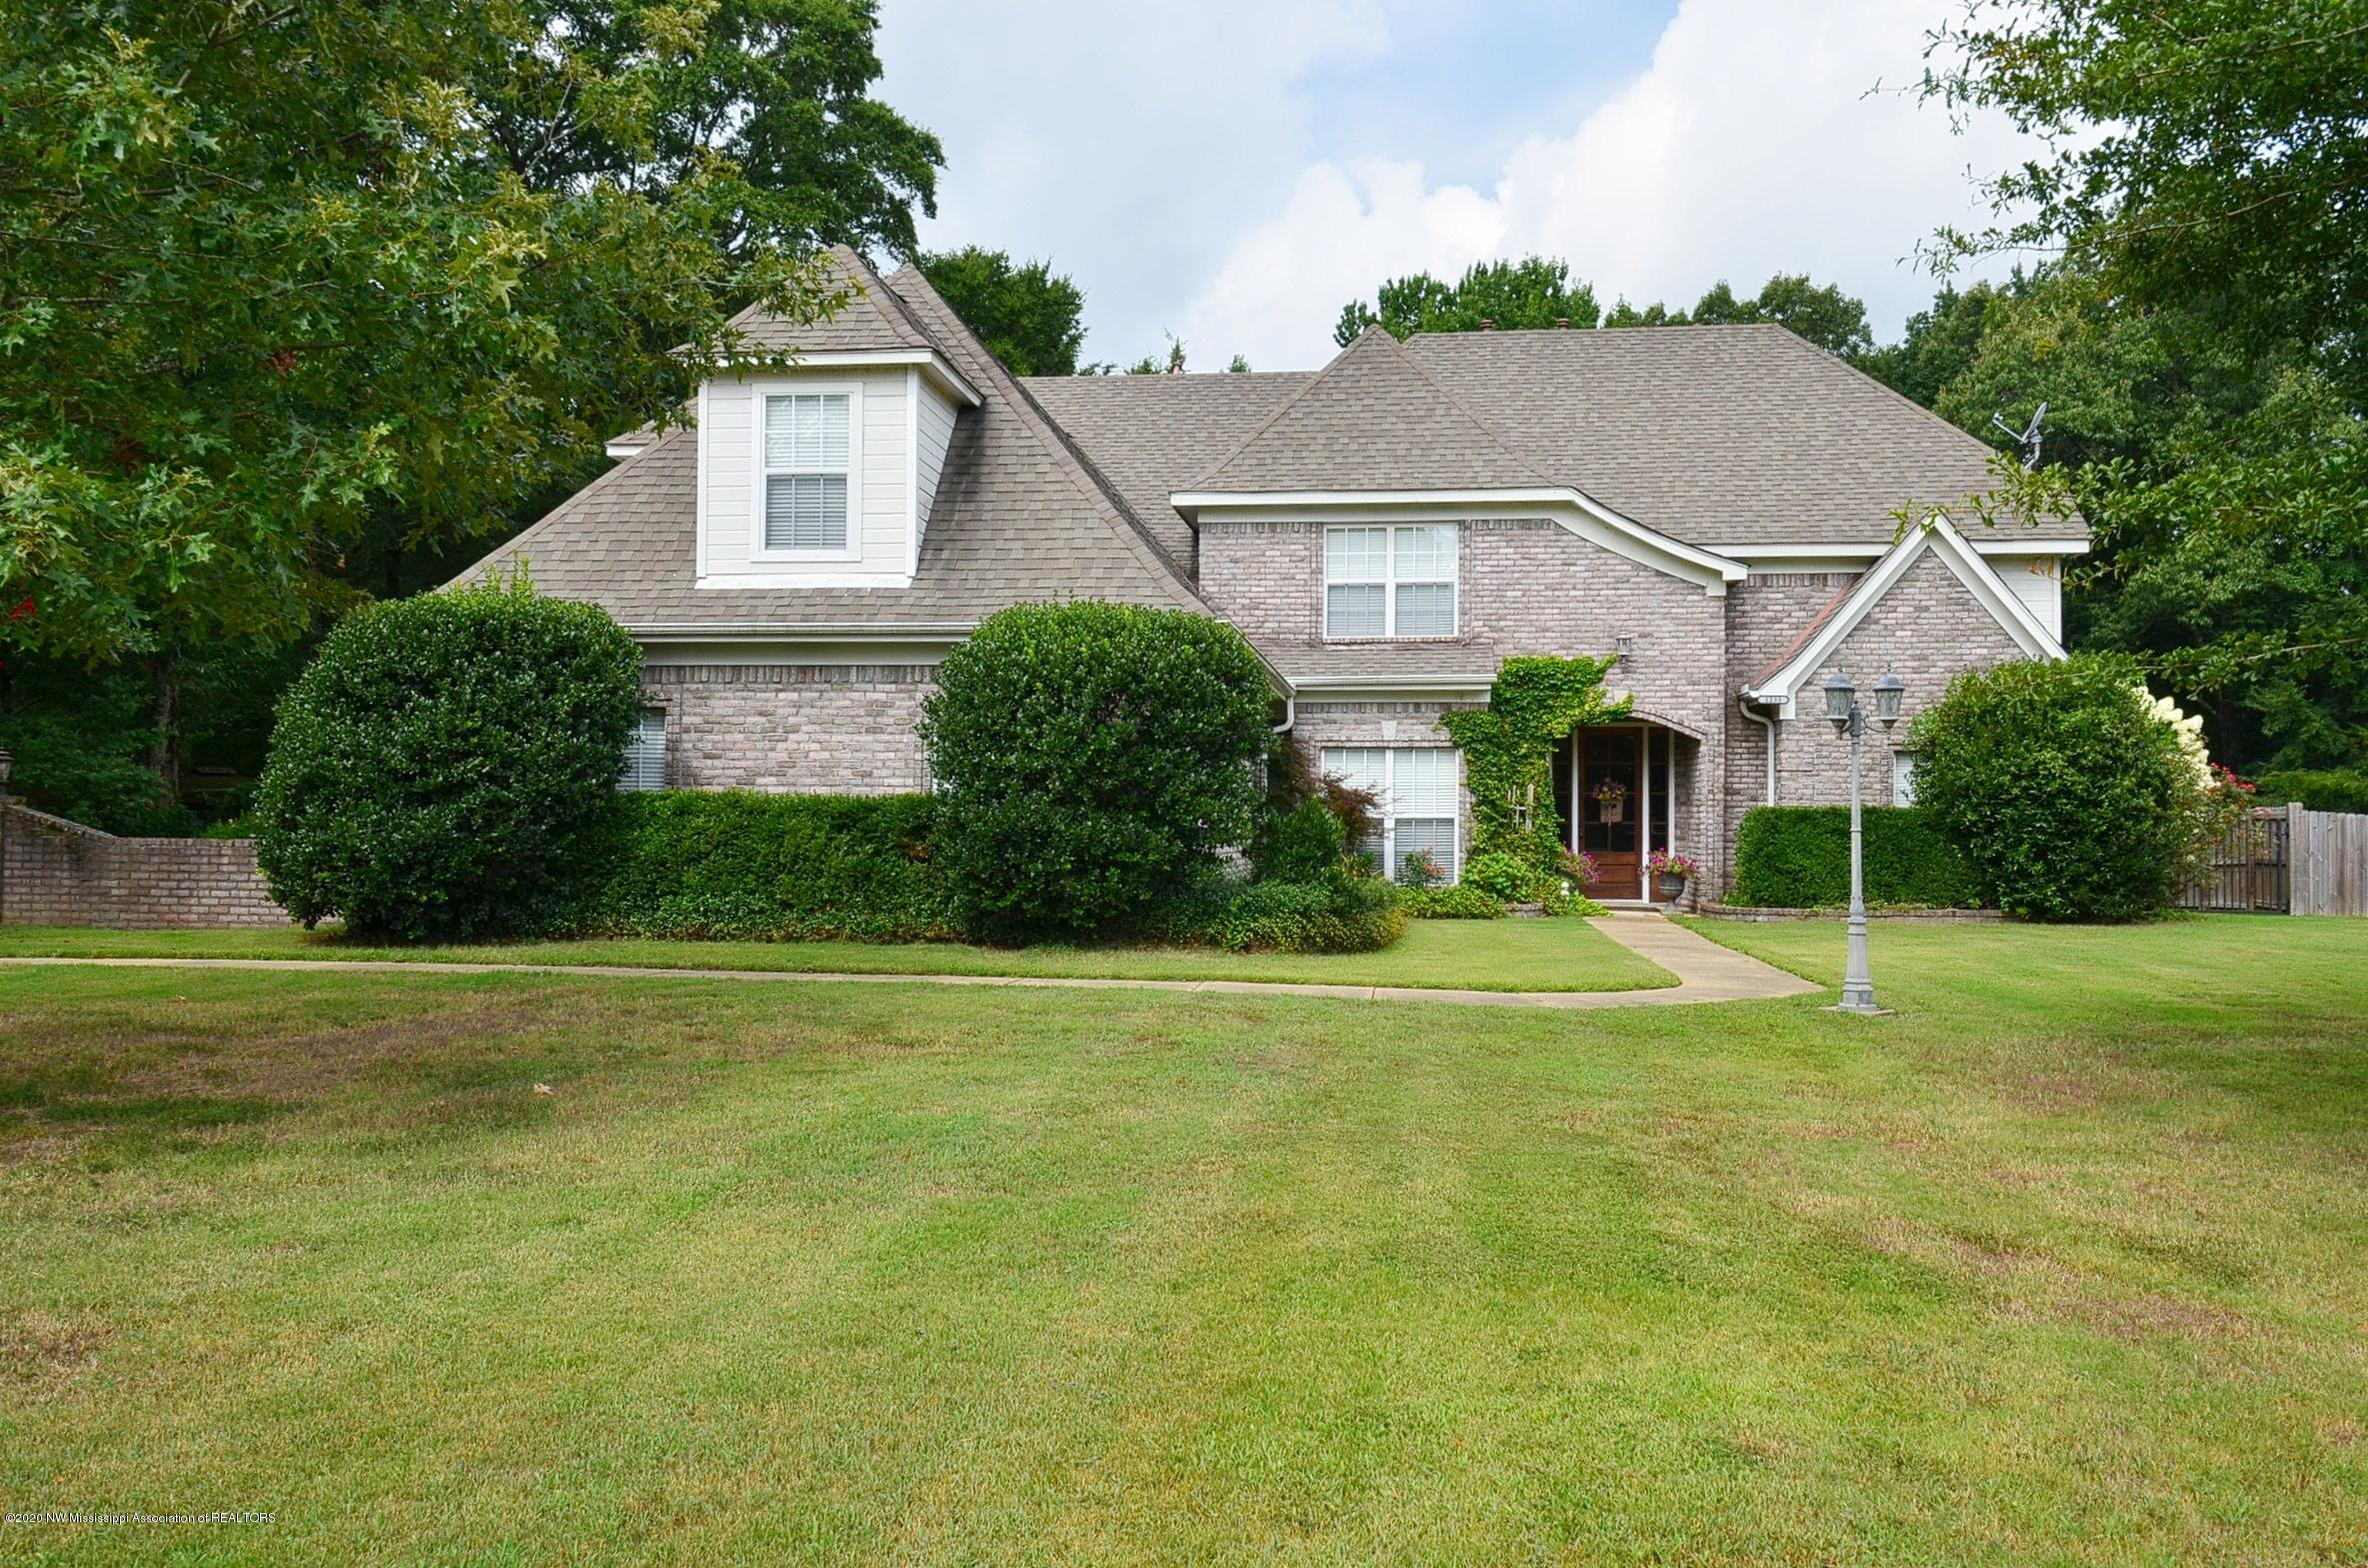 1233 Greers Landing, DeSoto, Mississippi 38632, 6 Bedrooms Bedrooms, ,4 BathroomsBathrooms,Residential,For Sale,Greers Landing,330521